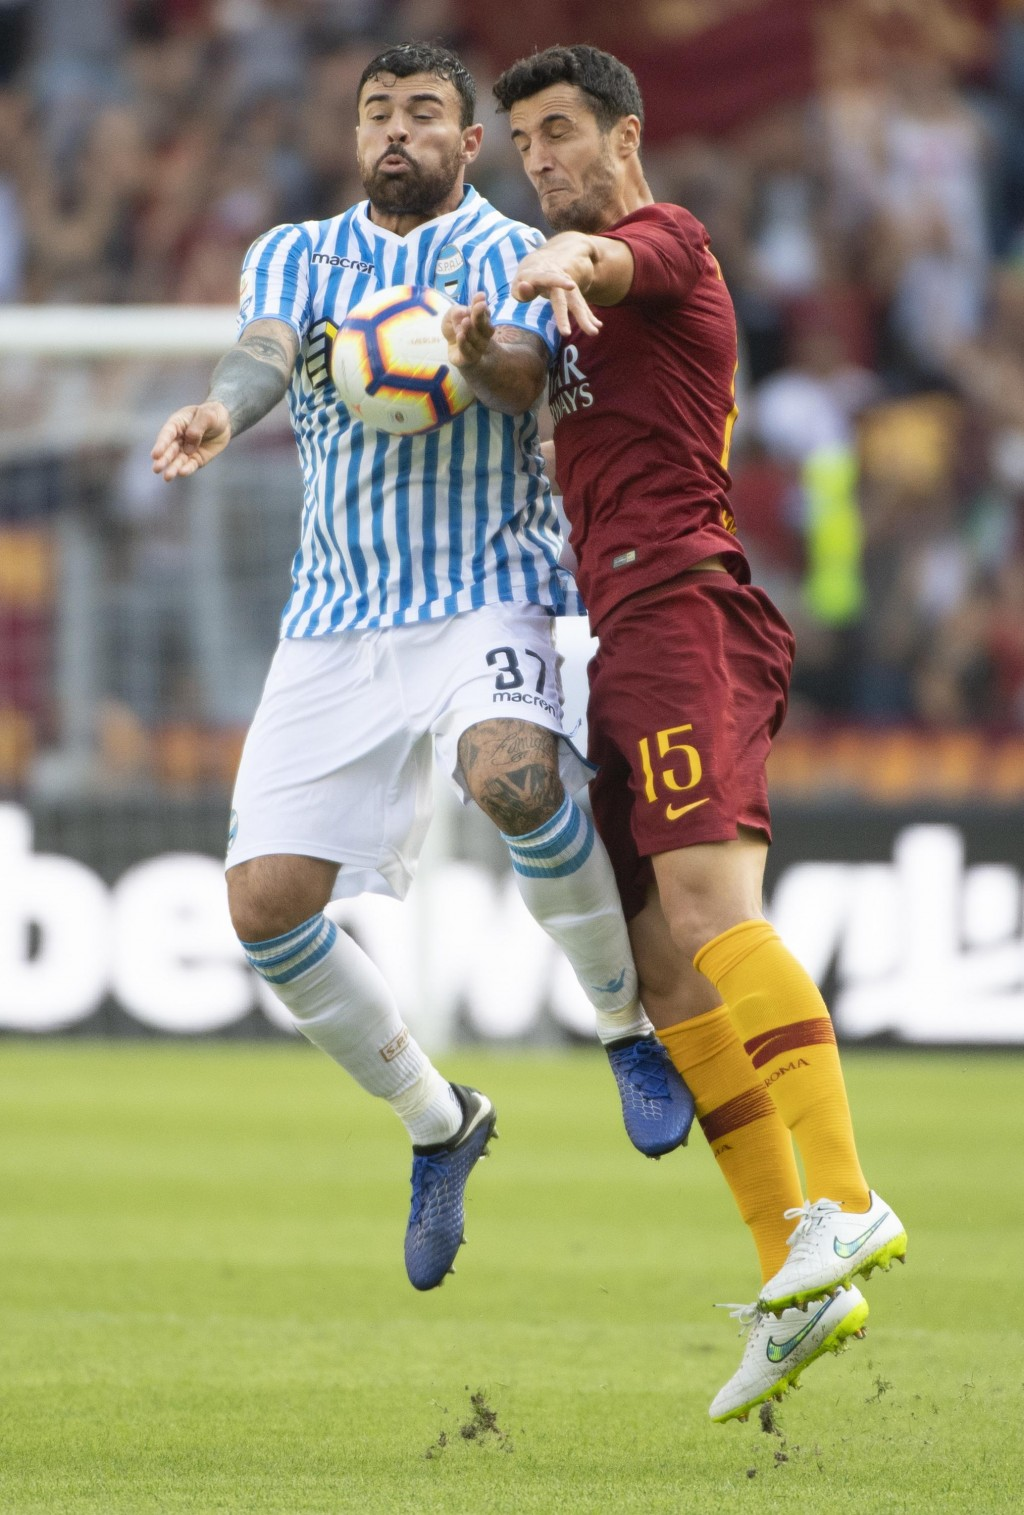 Spal's Andrea Petagna, left, vies for the ball with Roma's Ivan Marcano during the Italian Serie A soccer match between Roma and Spal, at Olimpico sta